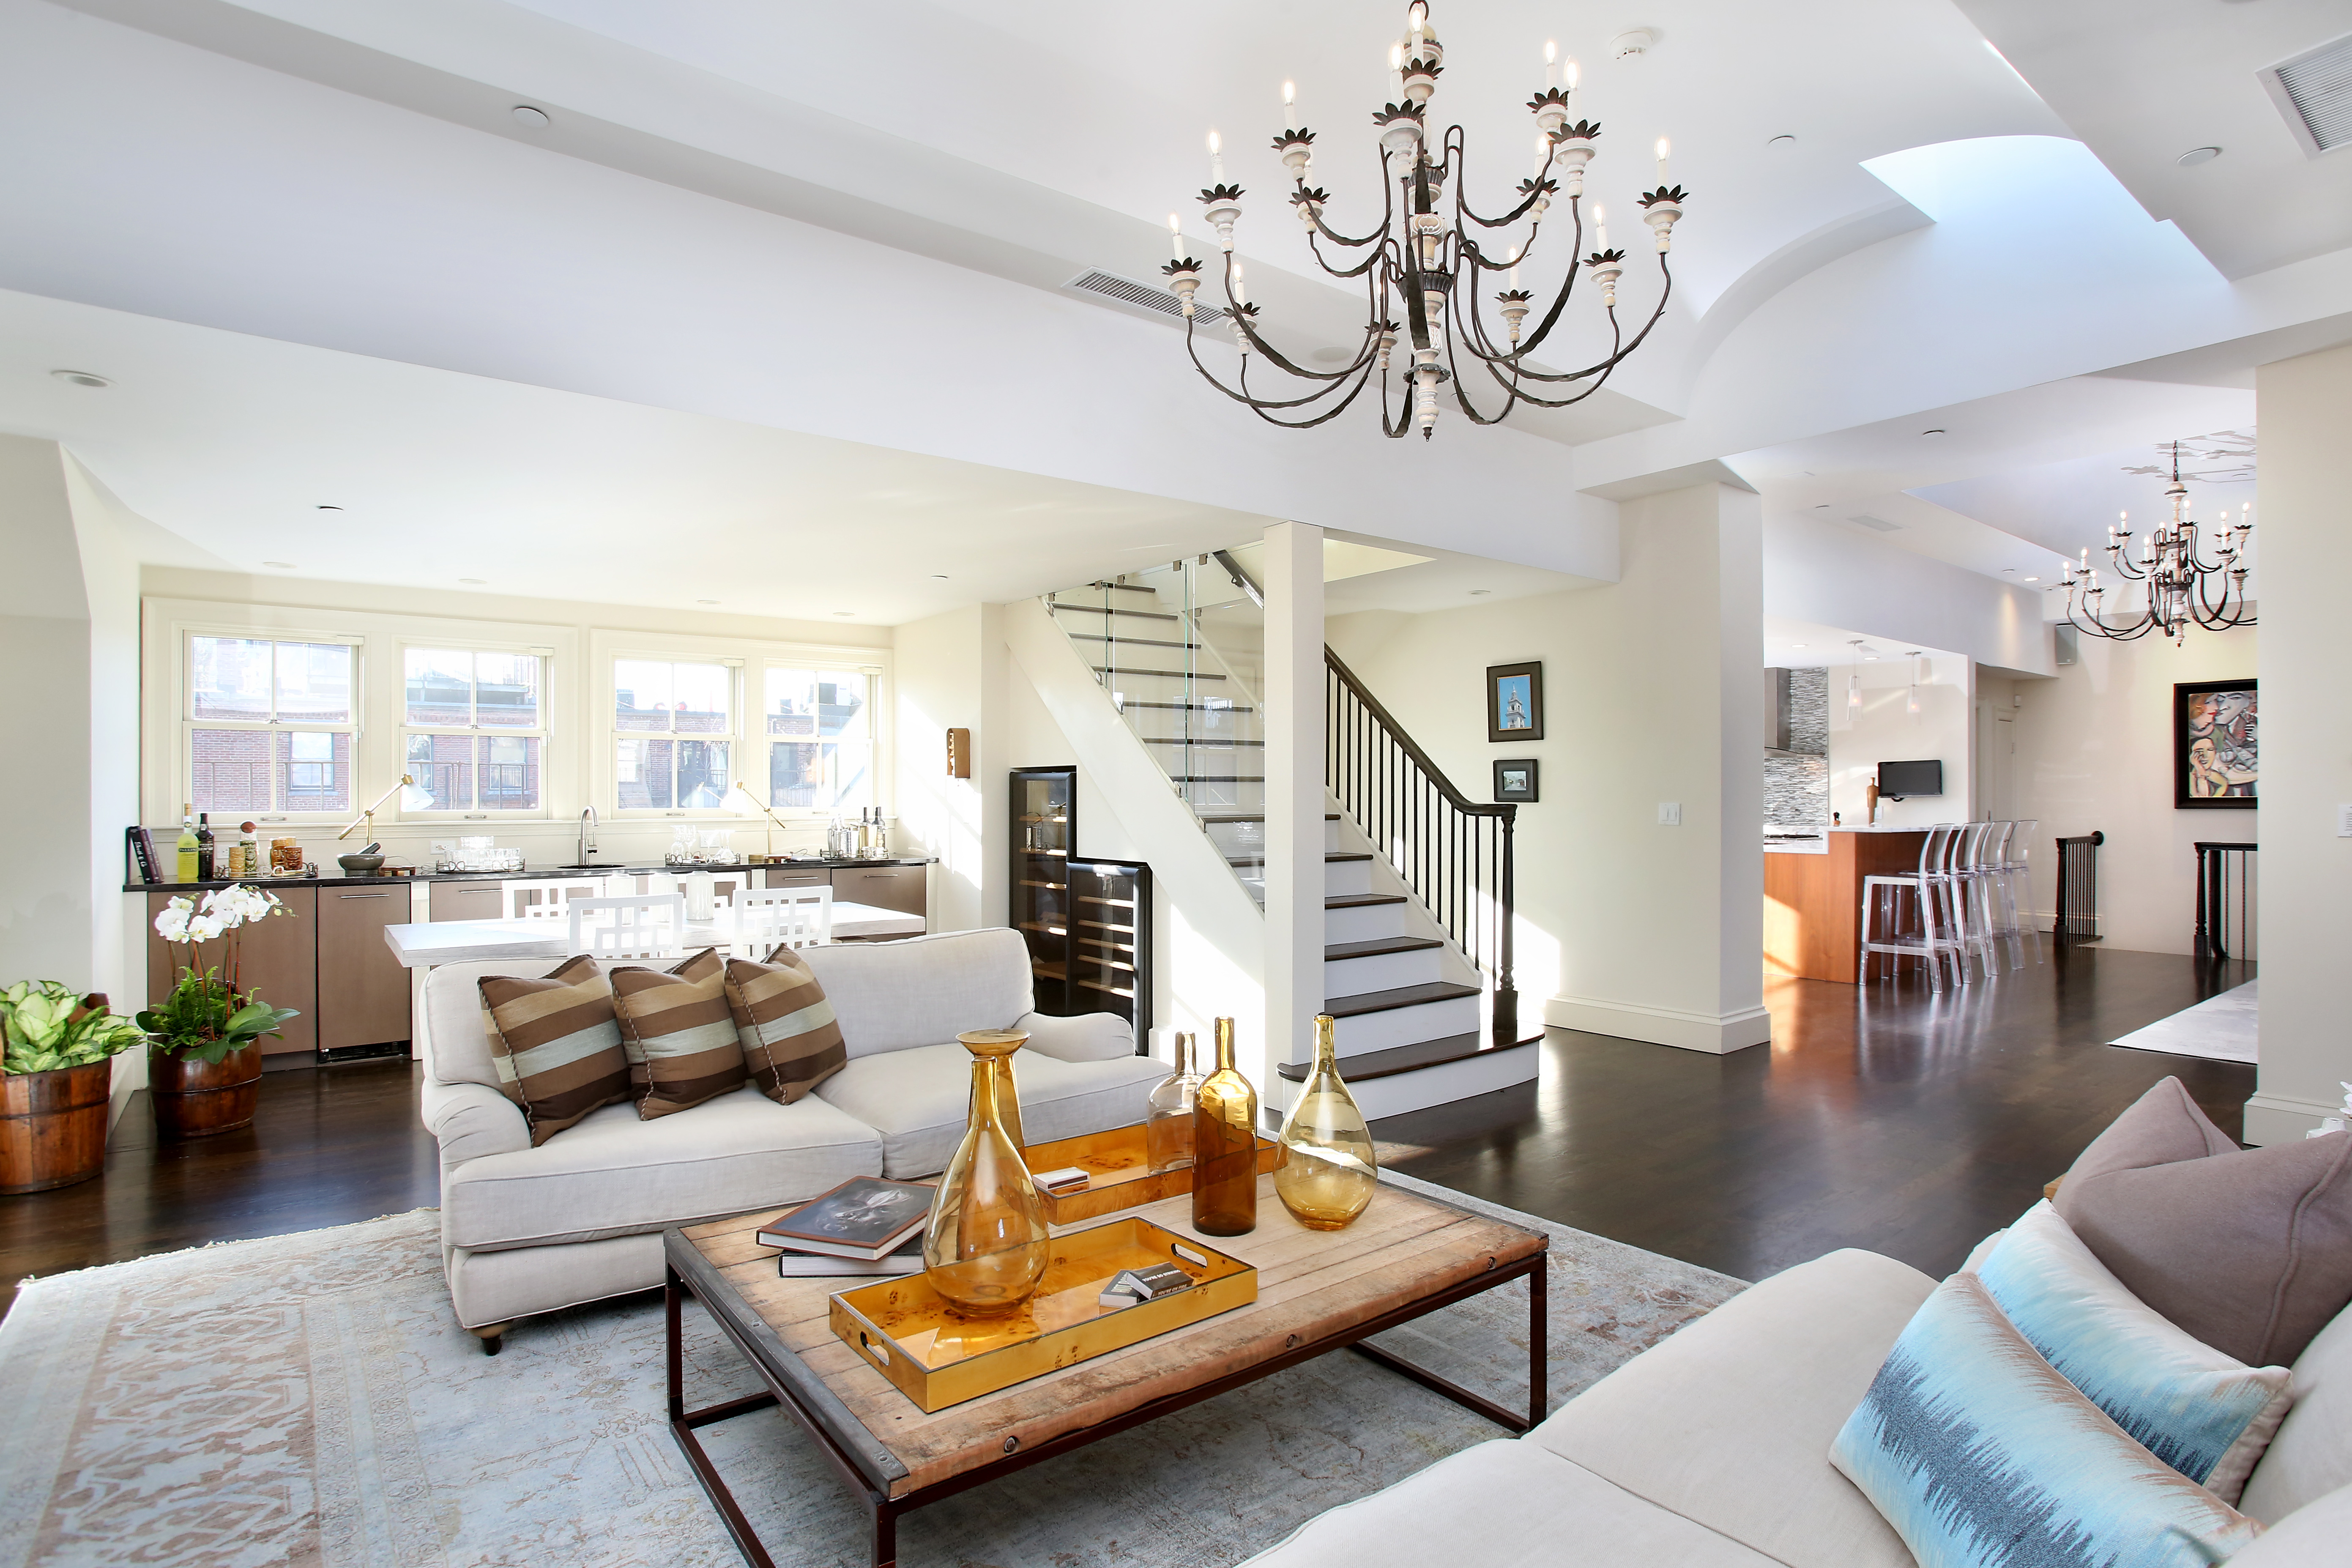 A spacious living room with furniture and a staircase leading into it.